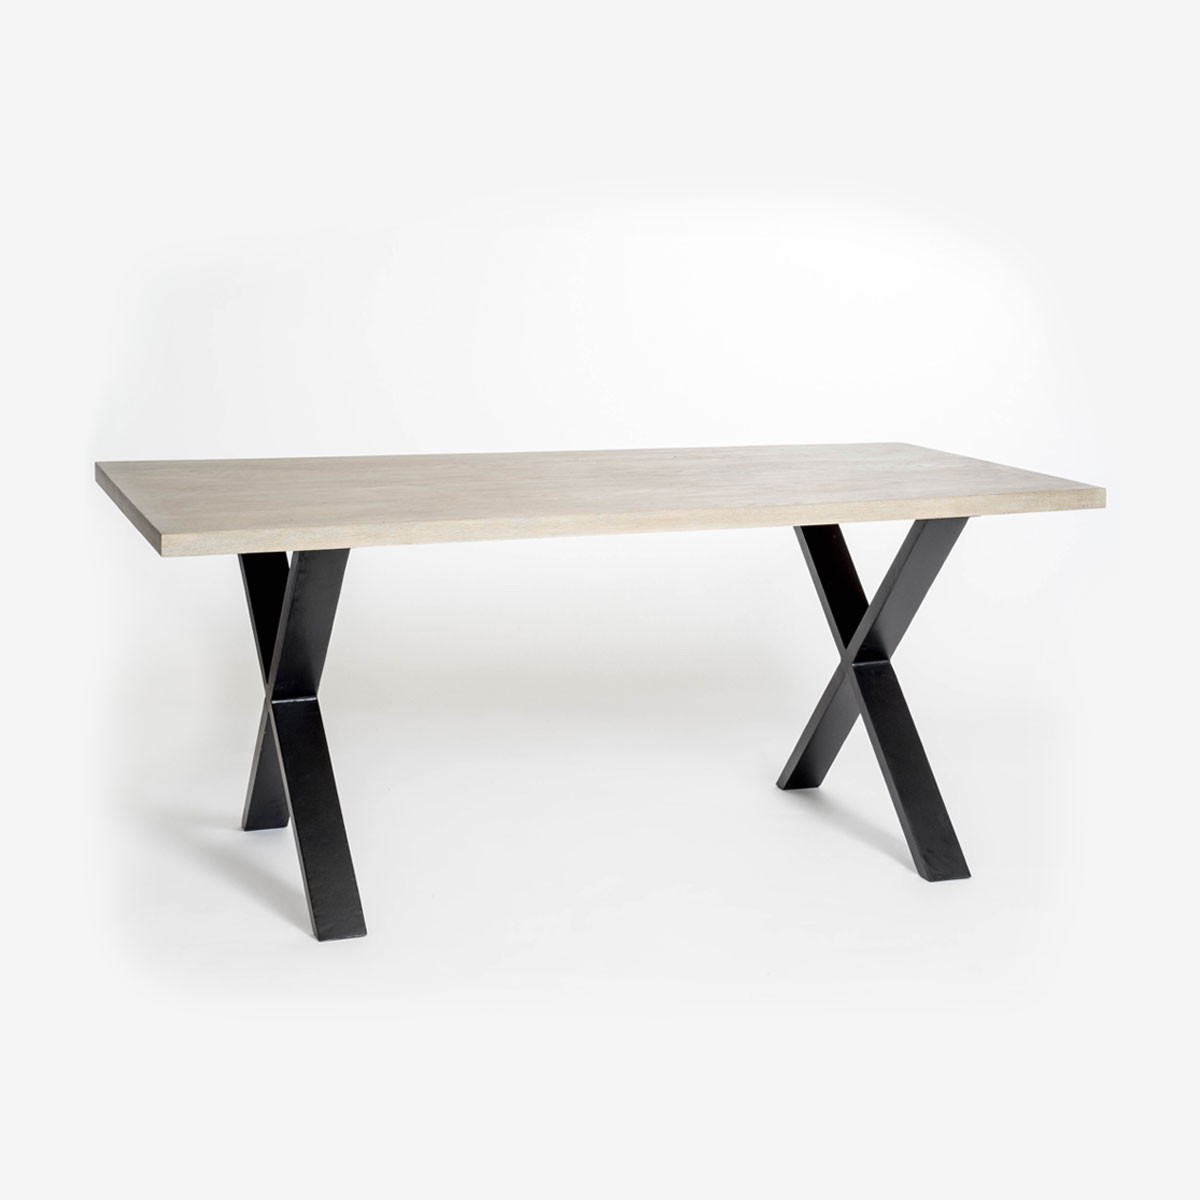 X Frame Dining Table with Aged Oak Top with Black Metal Legs